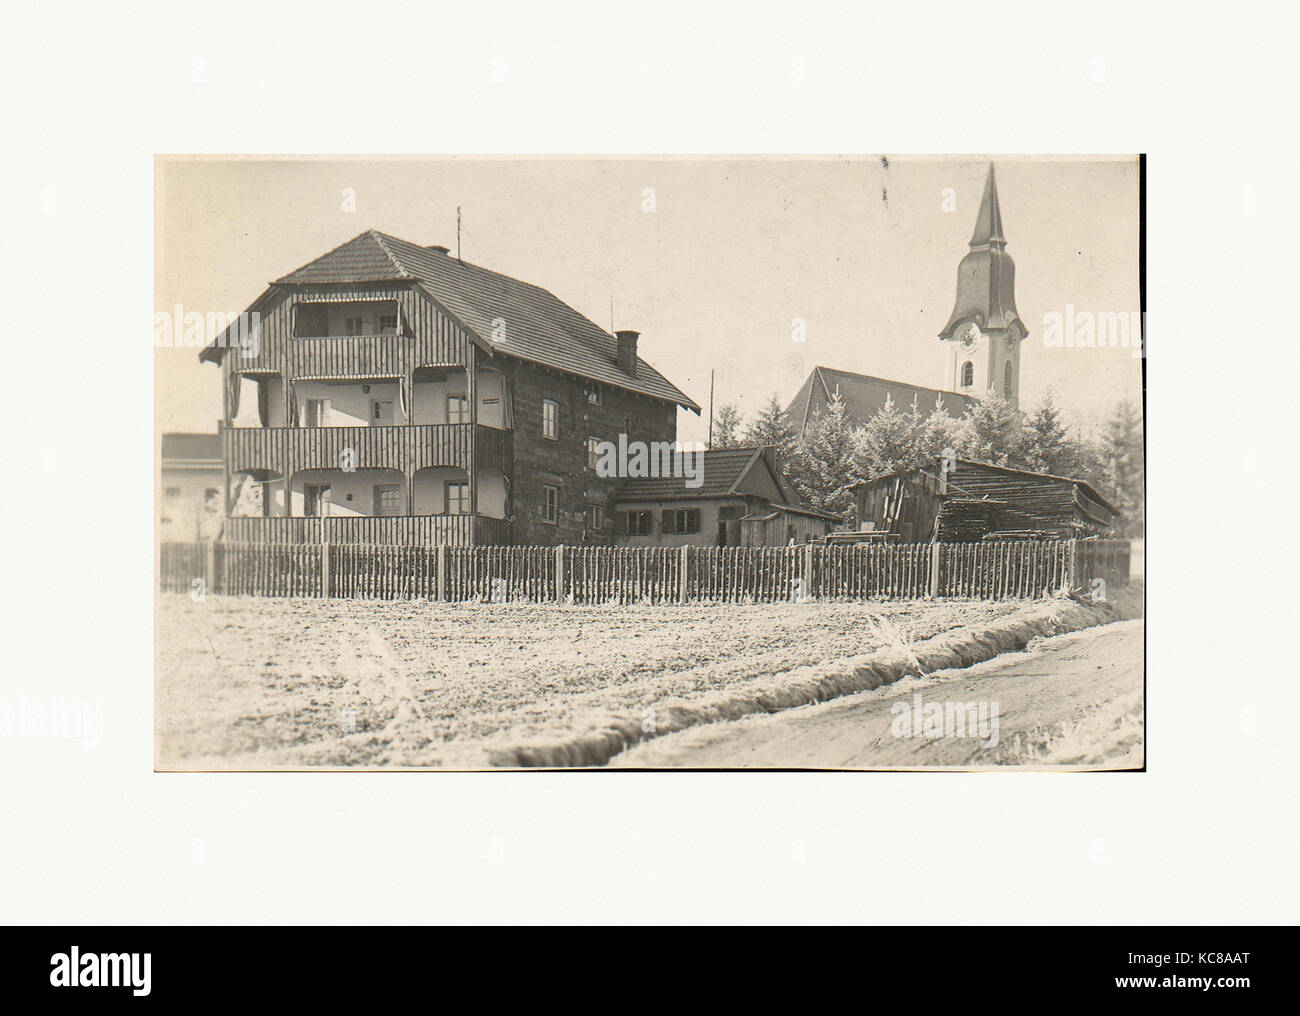 germany 1920 stock photos germany 1920 stock images alamy